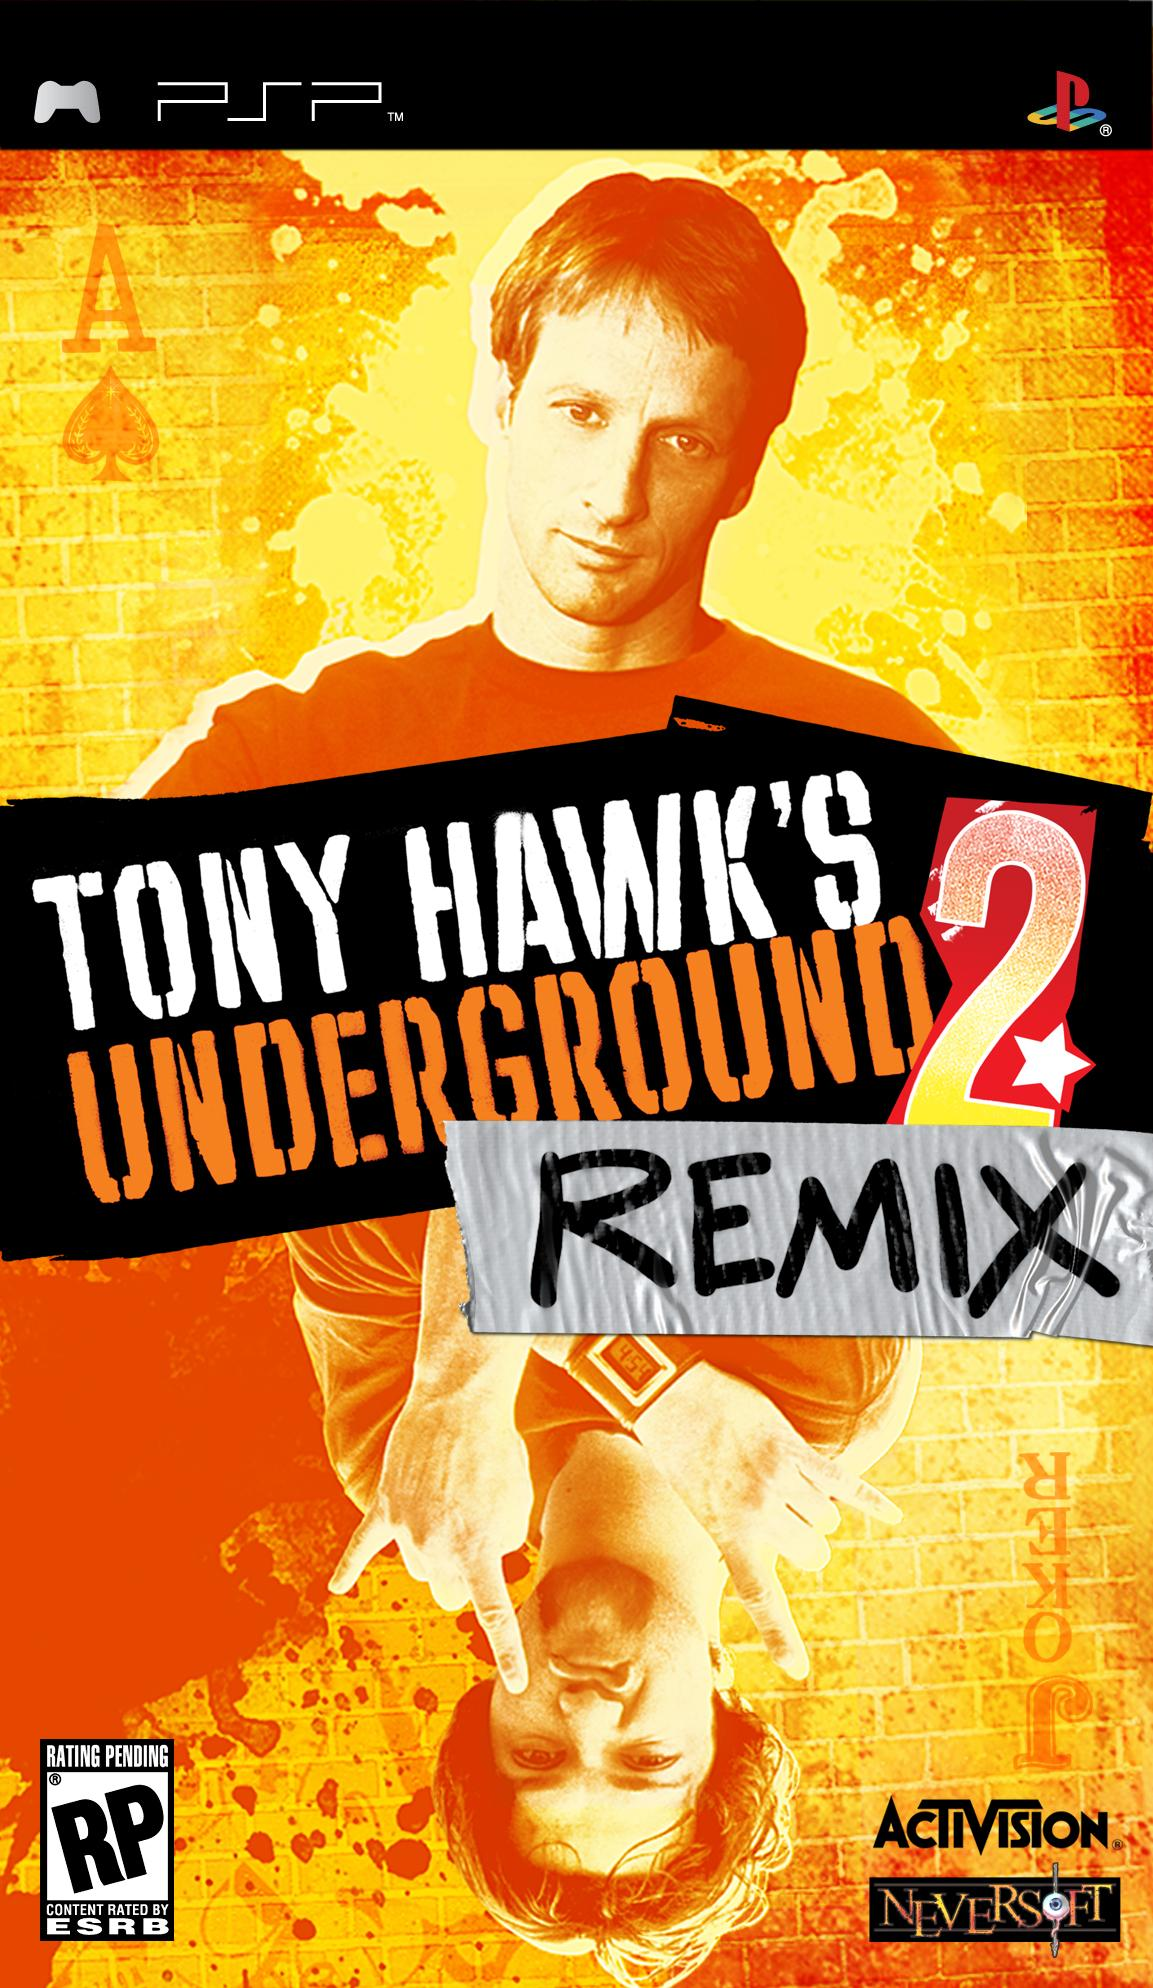 Tony Hawk's Underground 2 Remix - 01149